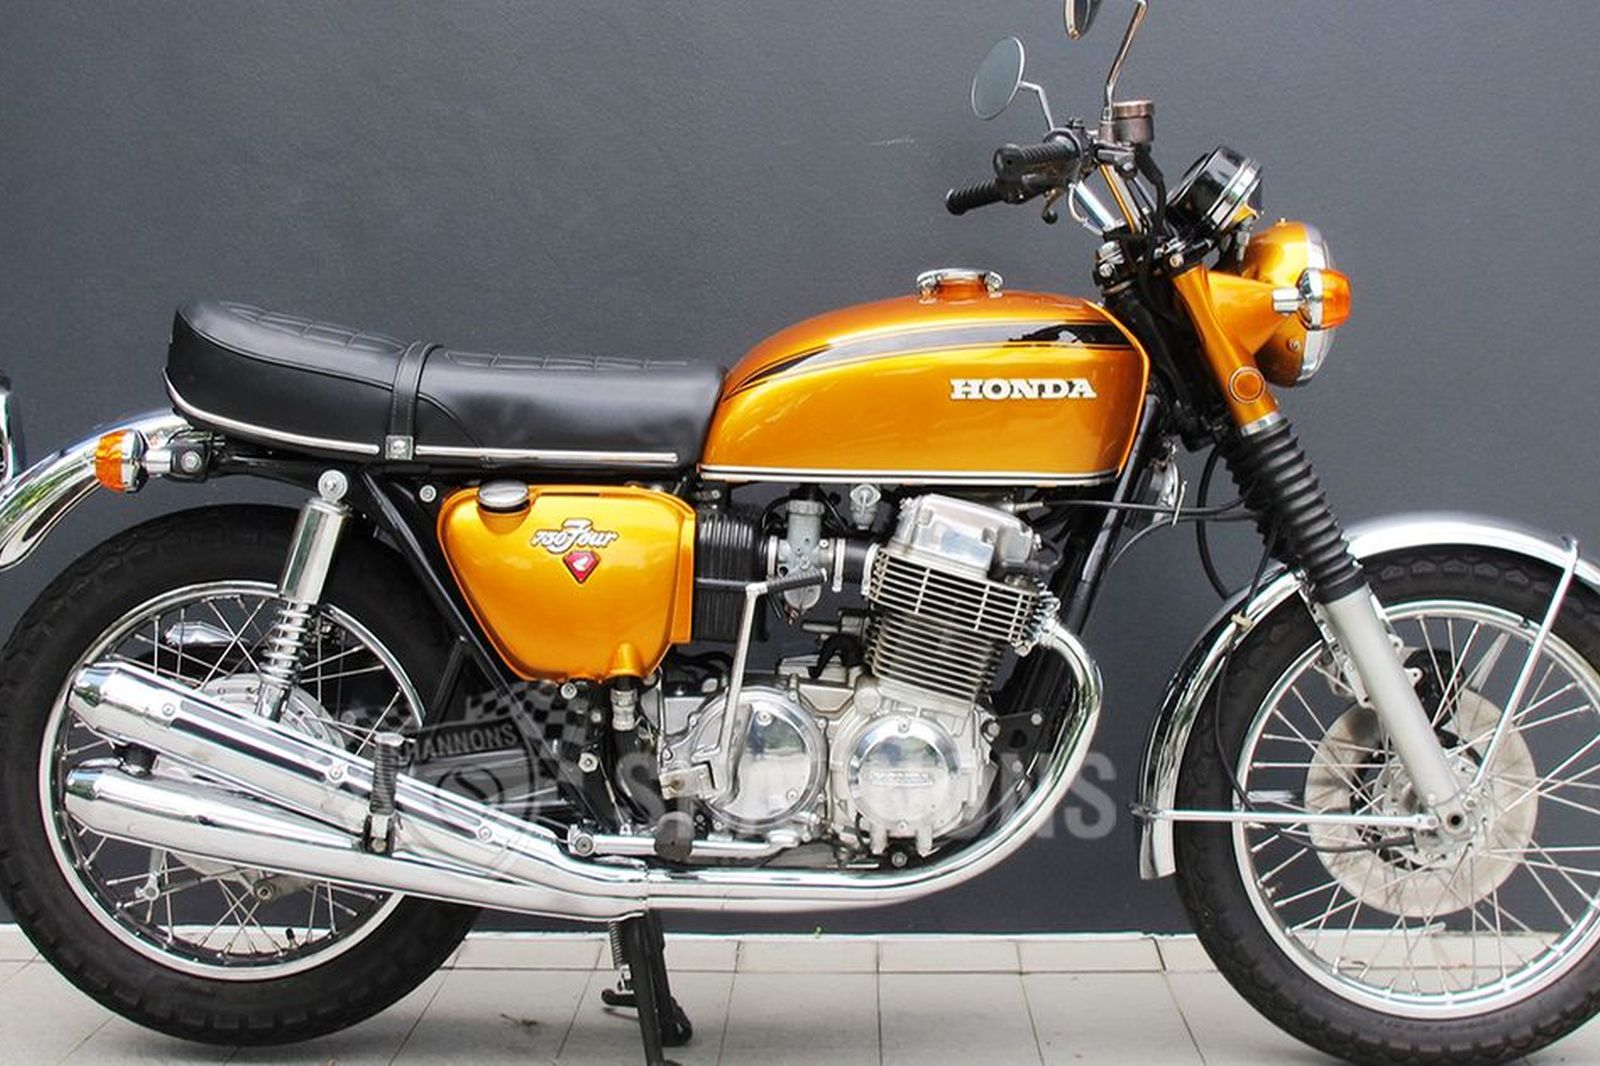 sold honda cb 750 ki motorcycle auctions lot aj shannons. Black Bedroom Furniture Sets. Home Design Ideas